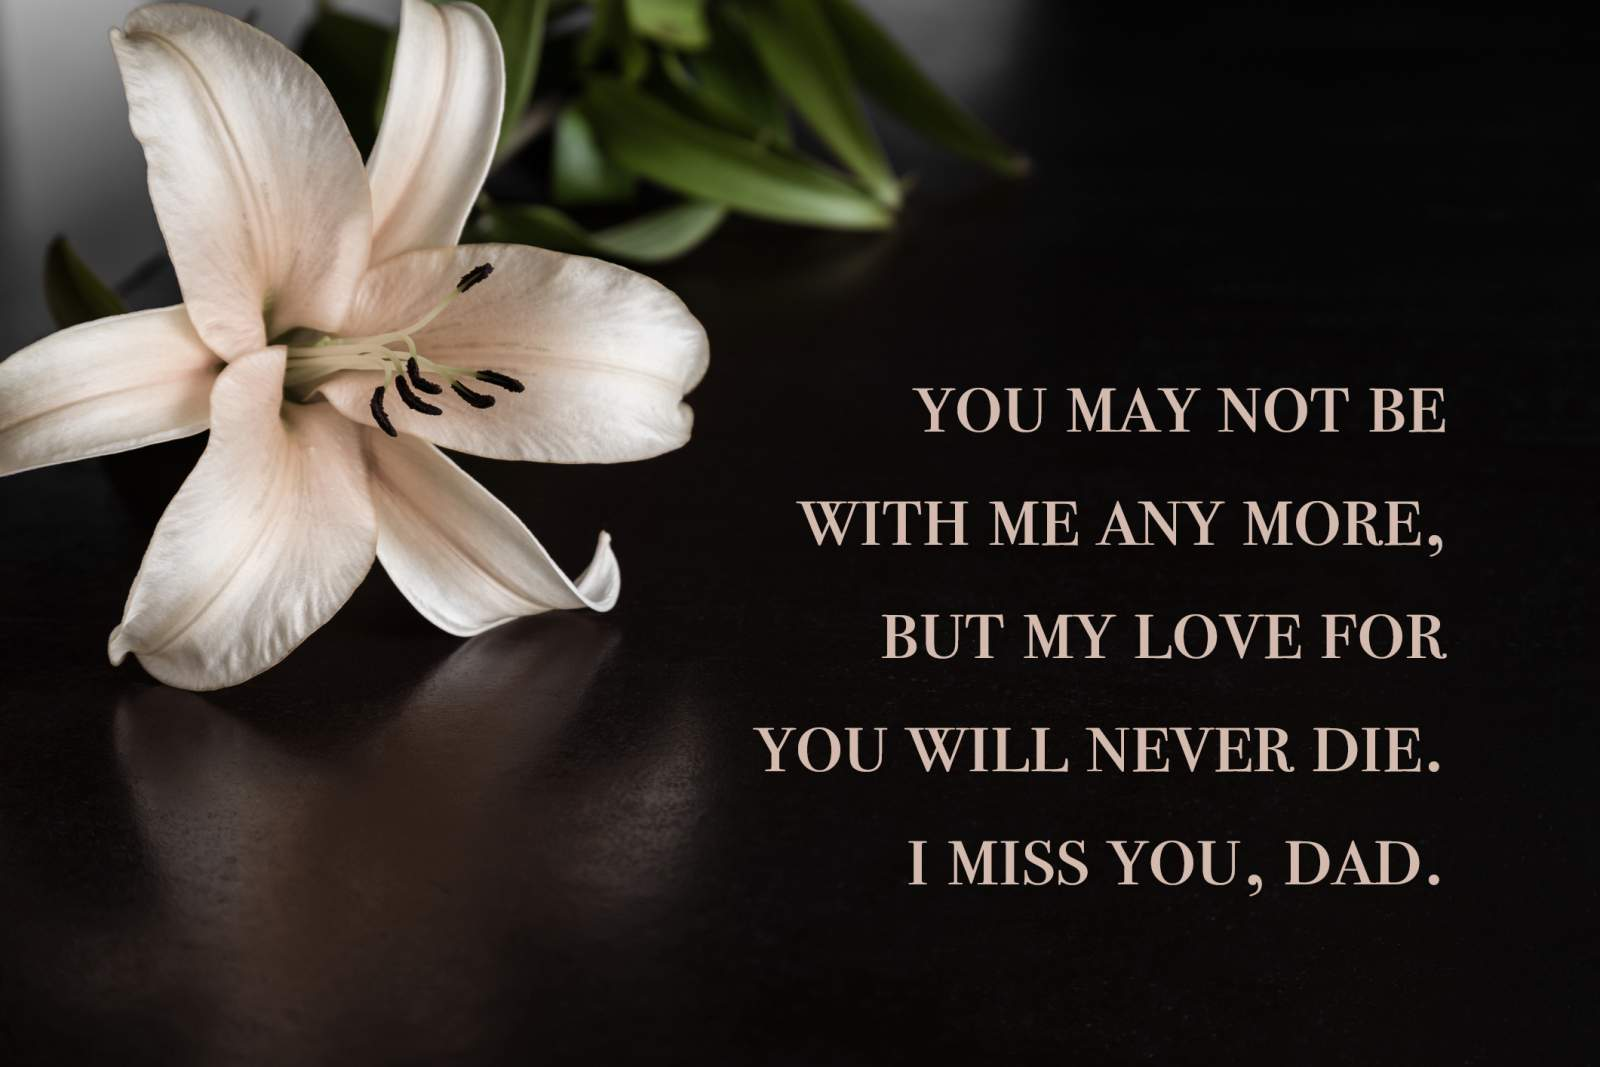 flowers with a miss you dad quote overlay